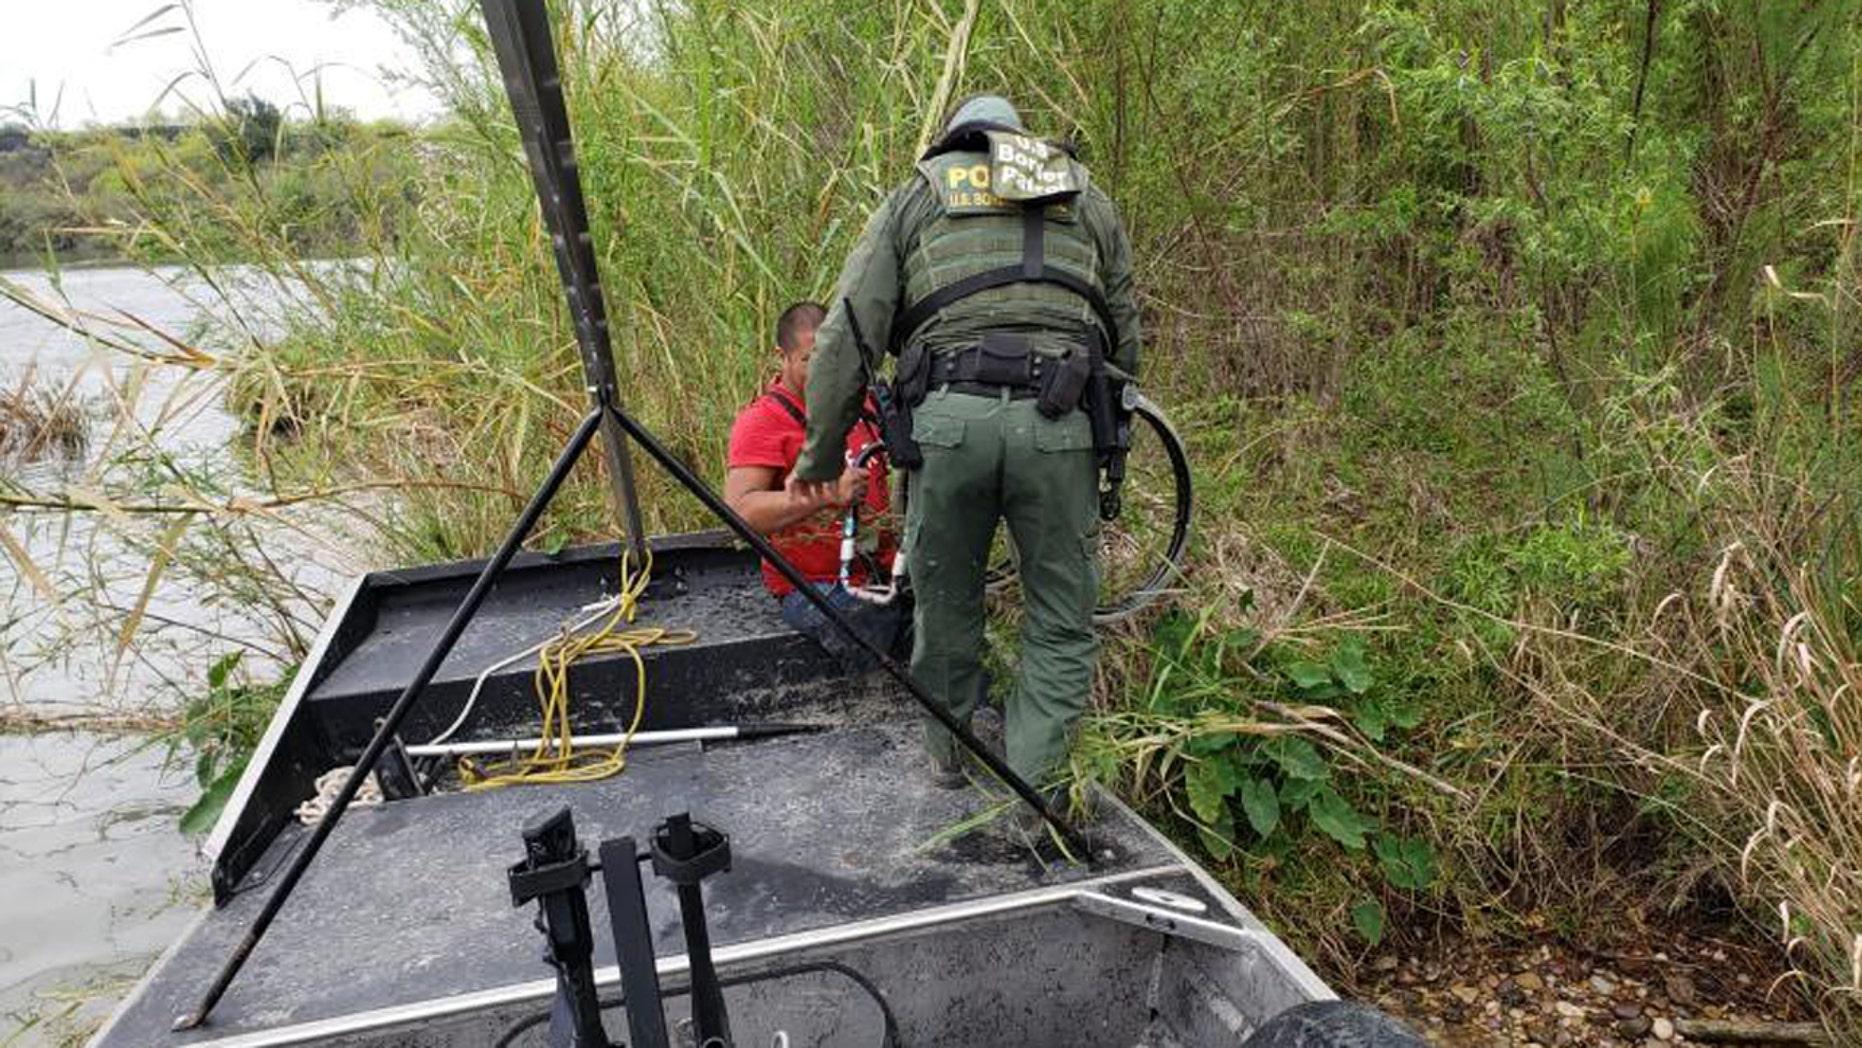 A double amputee from Guatemala was rescued an island in the middle of the Rio Grande River in Texas on Wednesday.